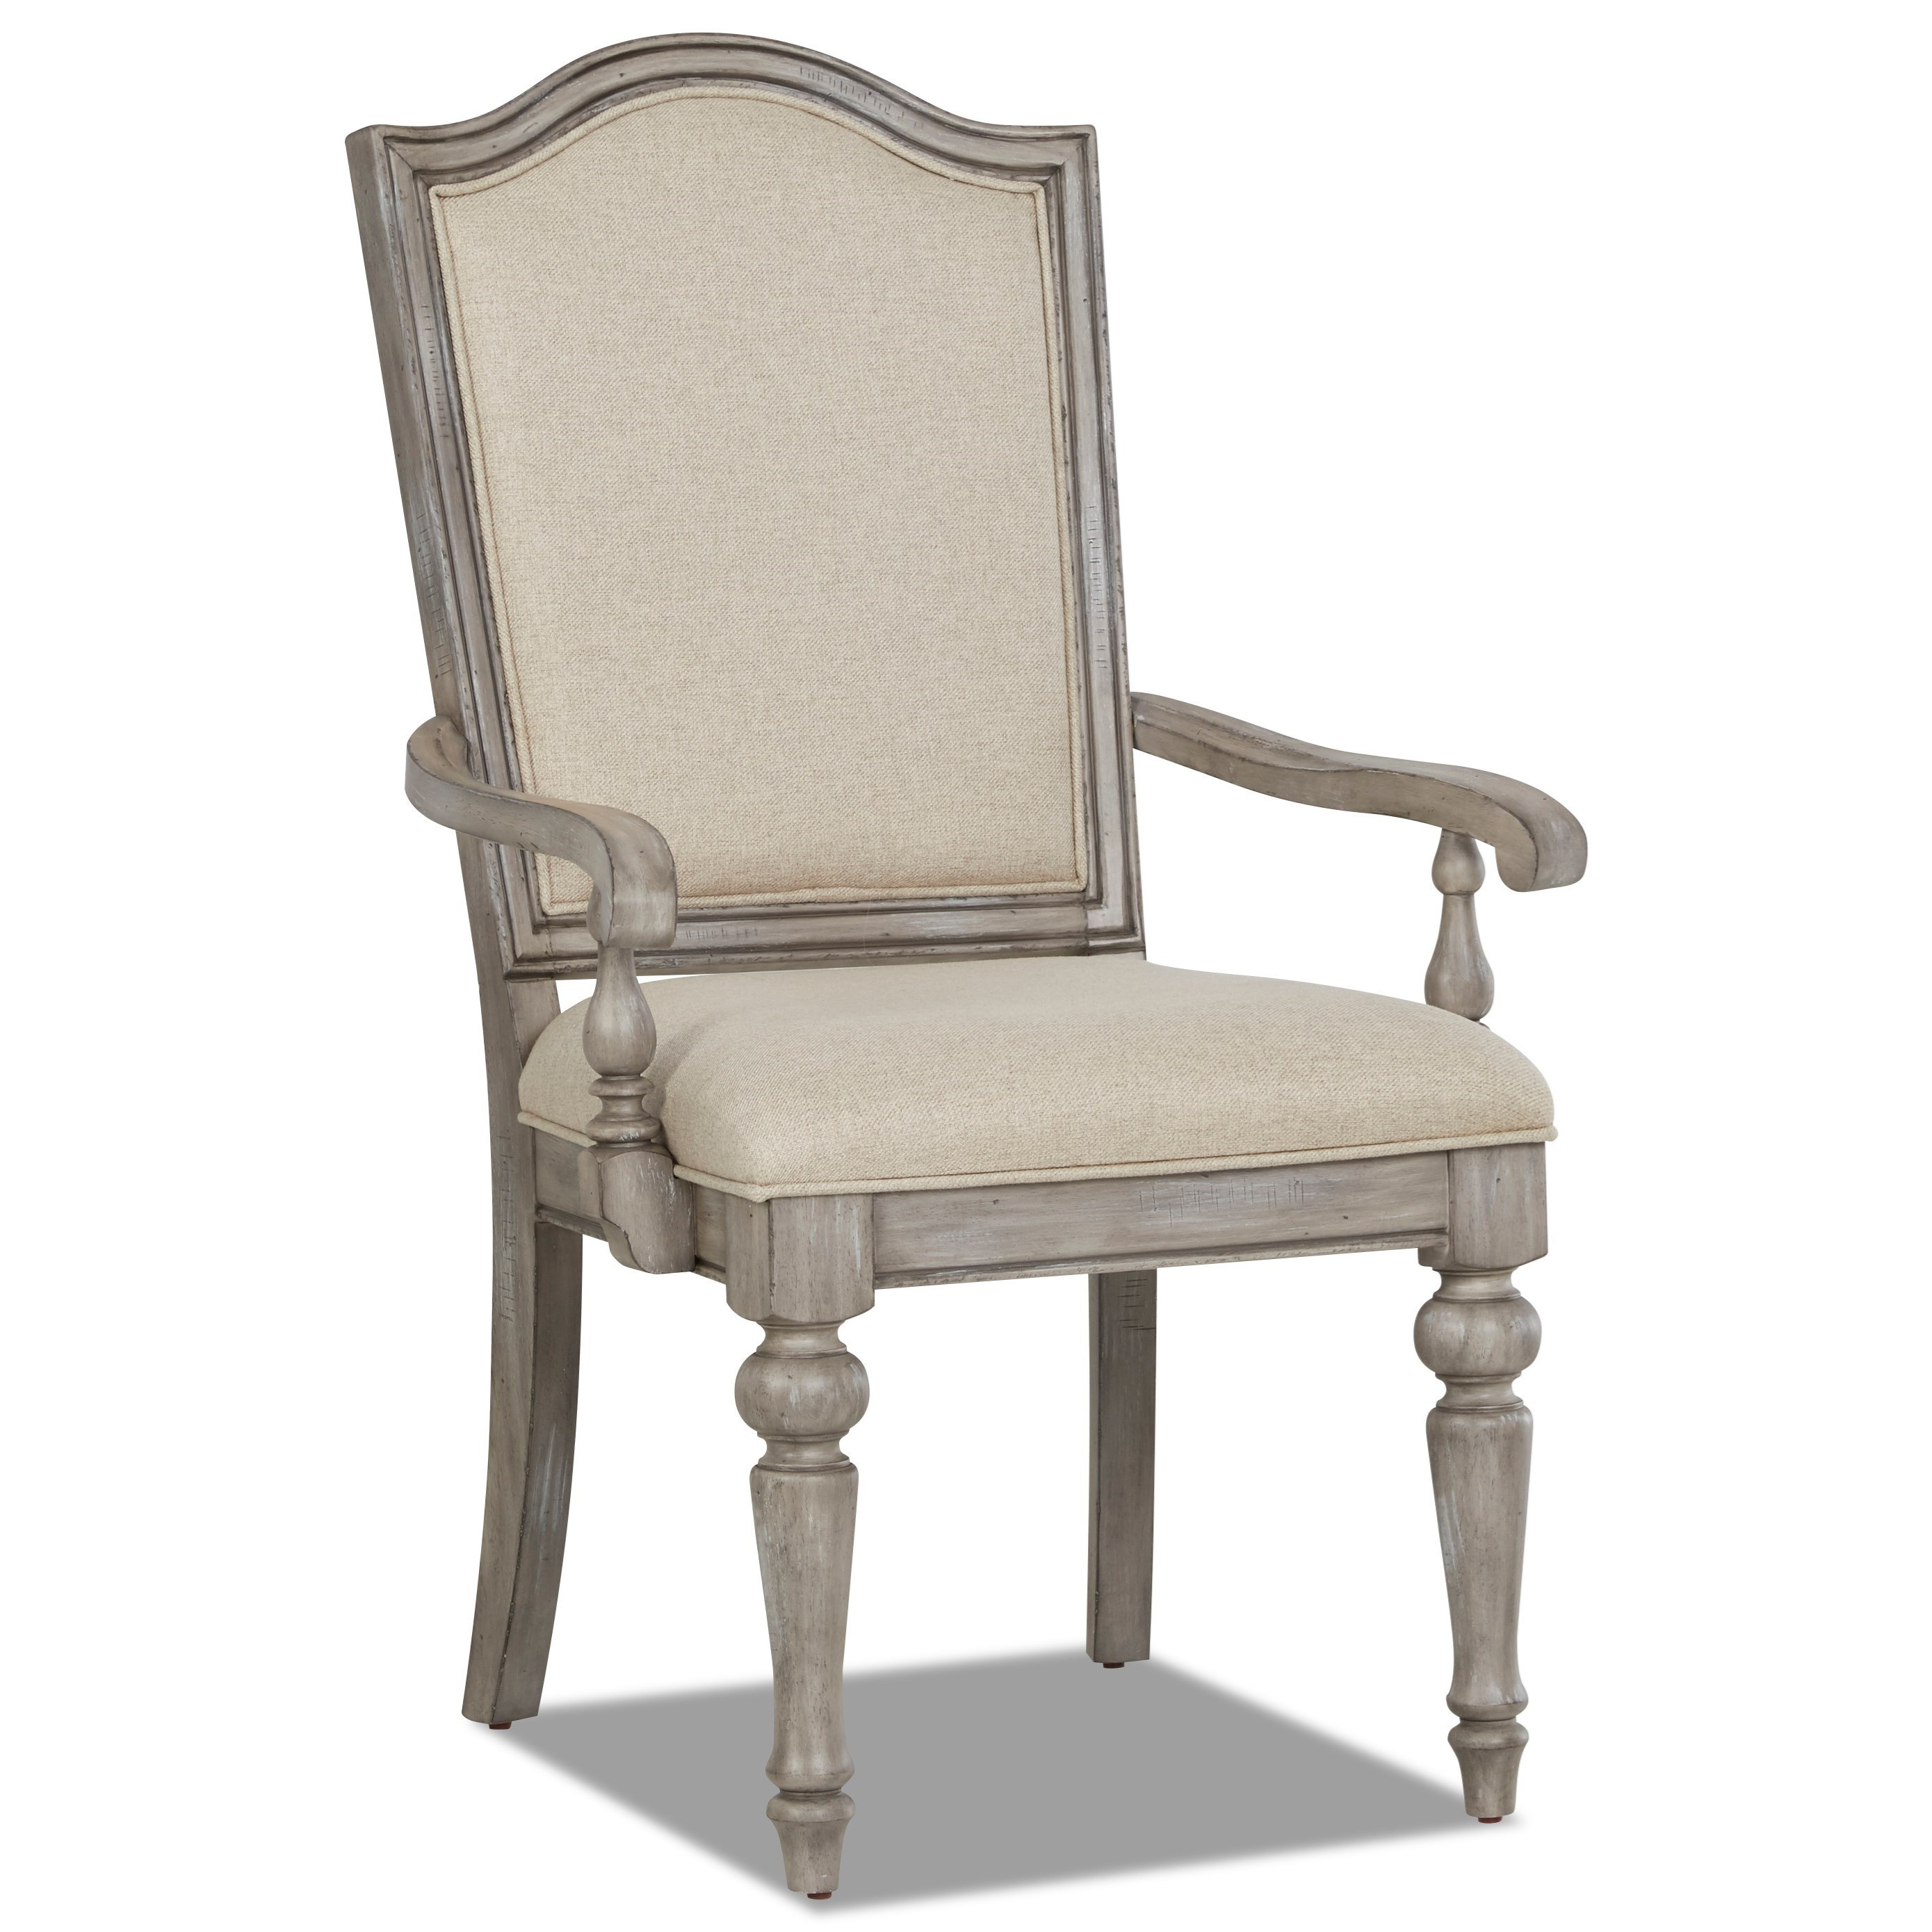 Windmere Dining Room Chair by Klaussner International at Darvin Furniture